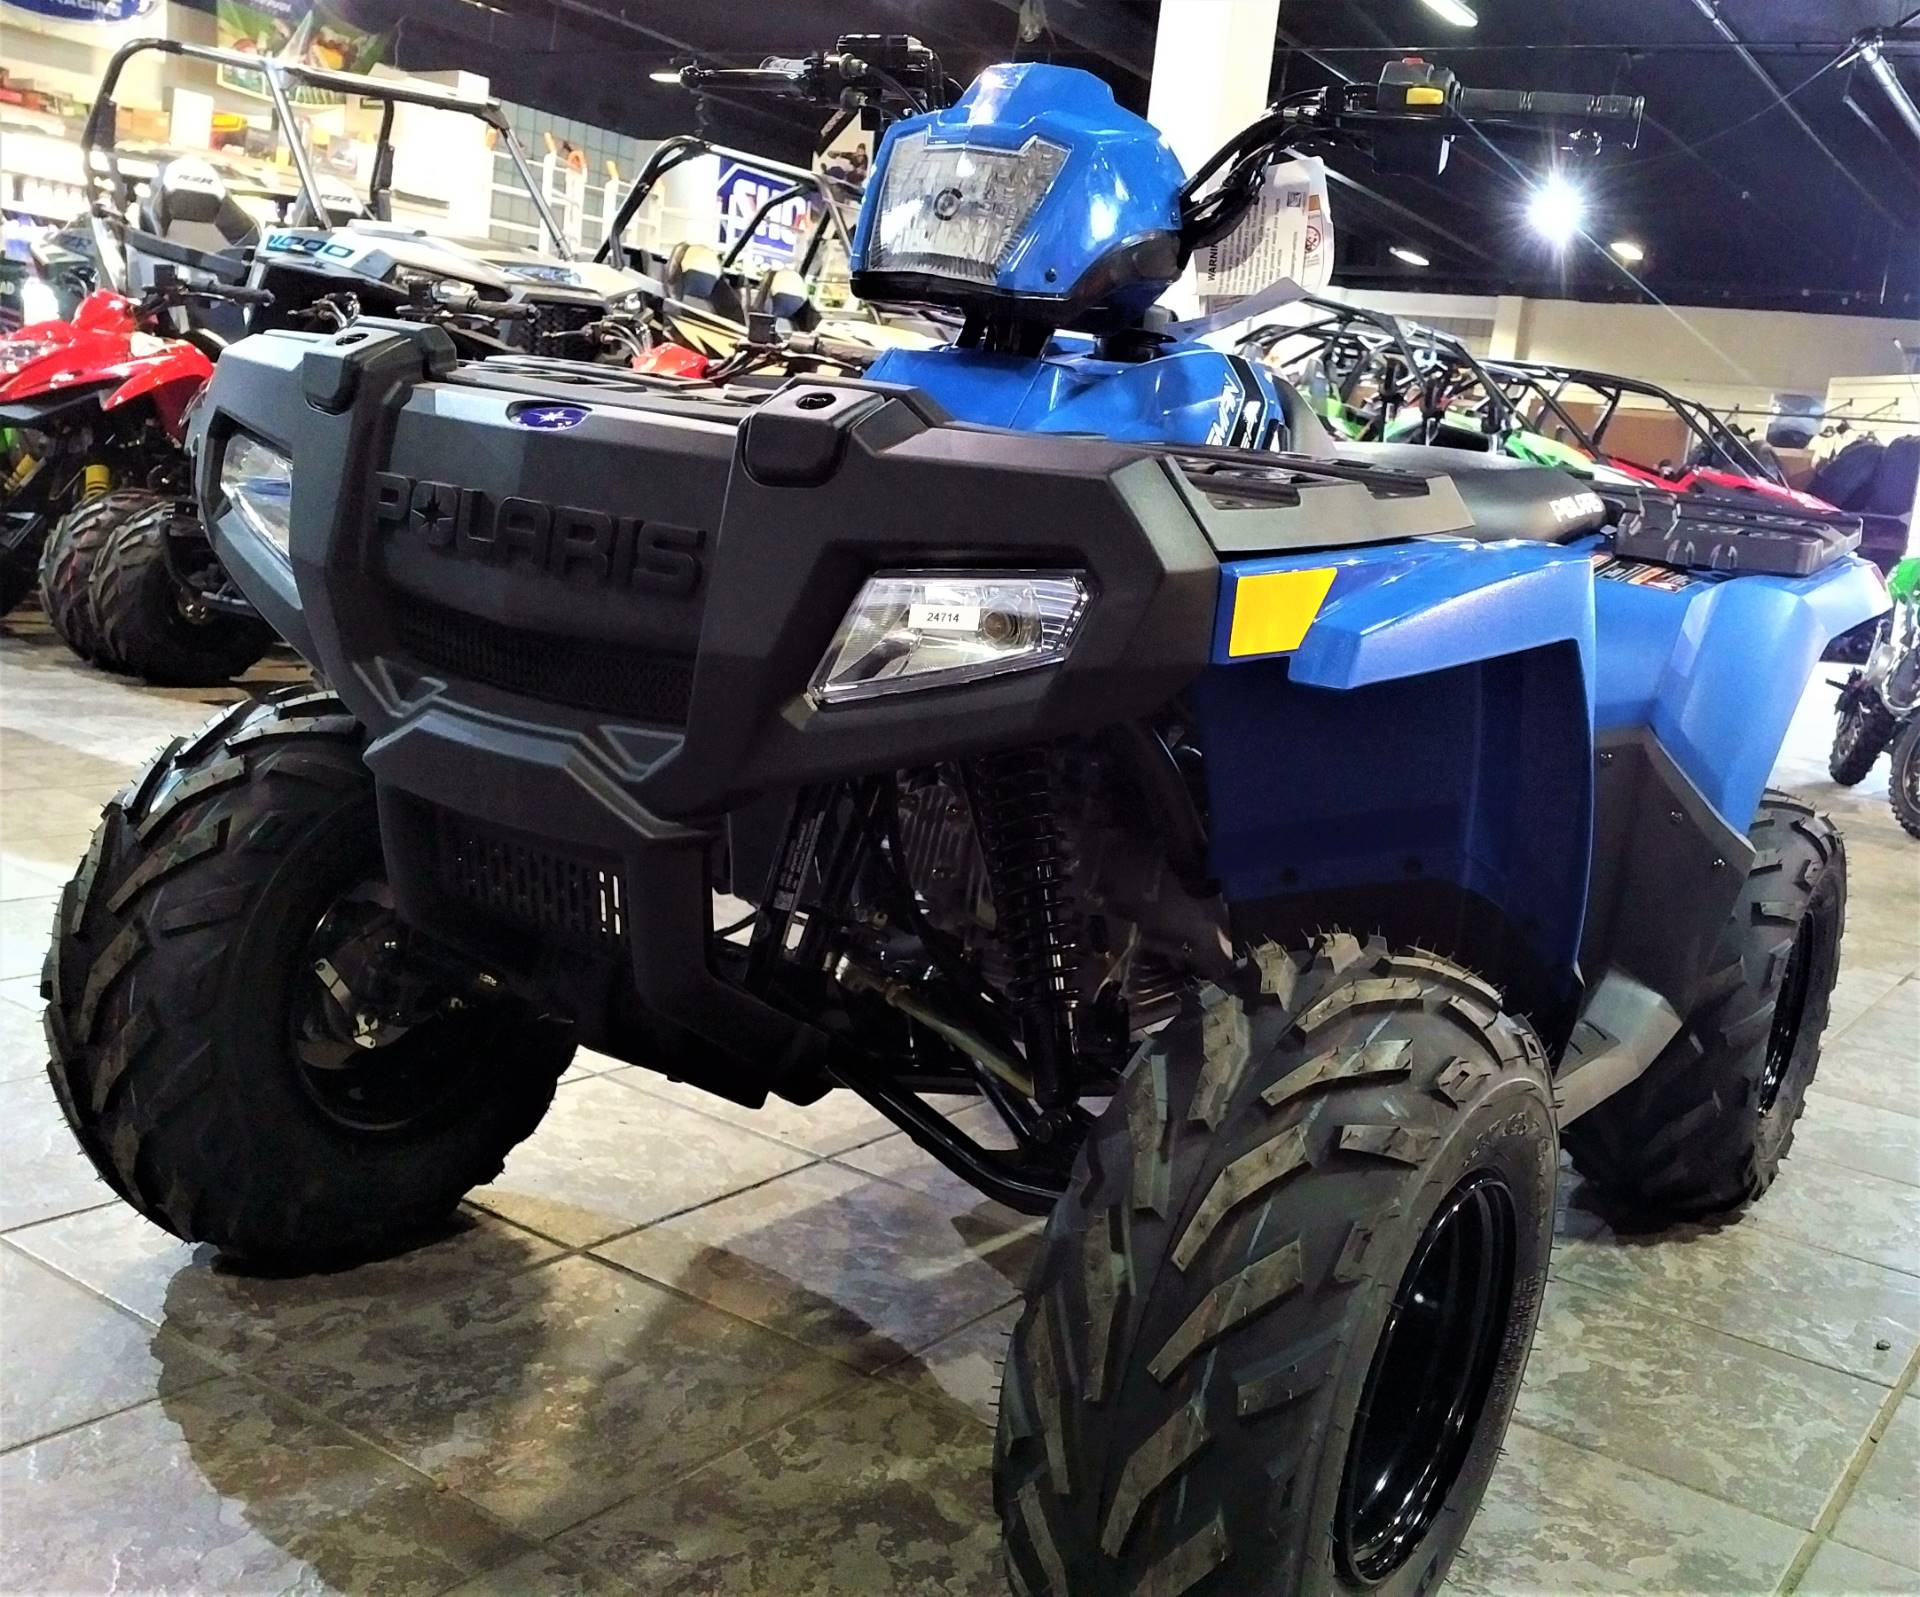 2021 Polaris Sportsman 110 EFI in Salinas, California - Photo 6